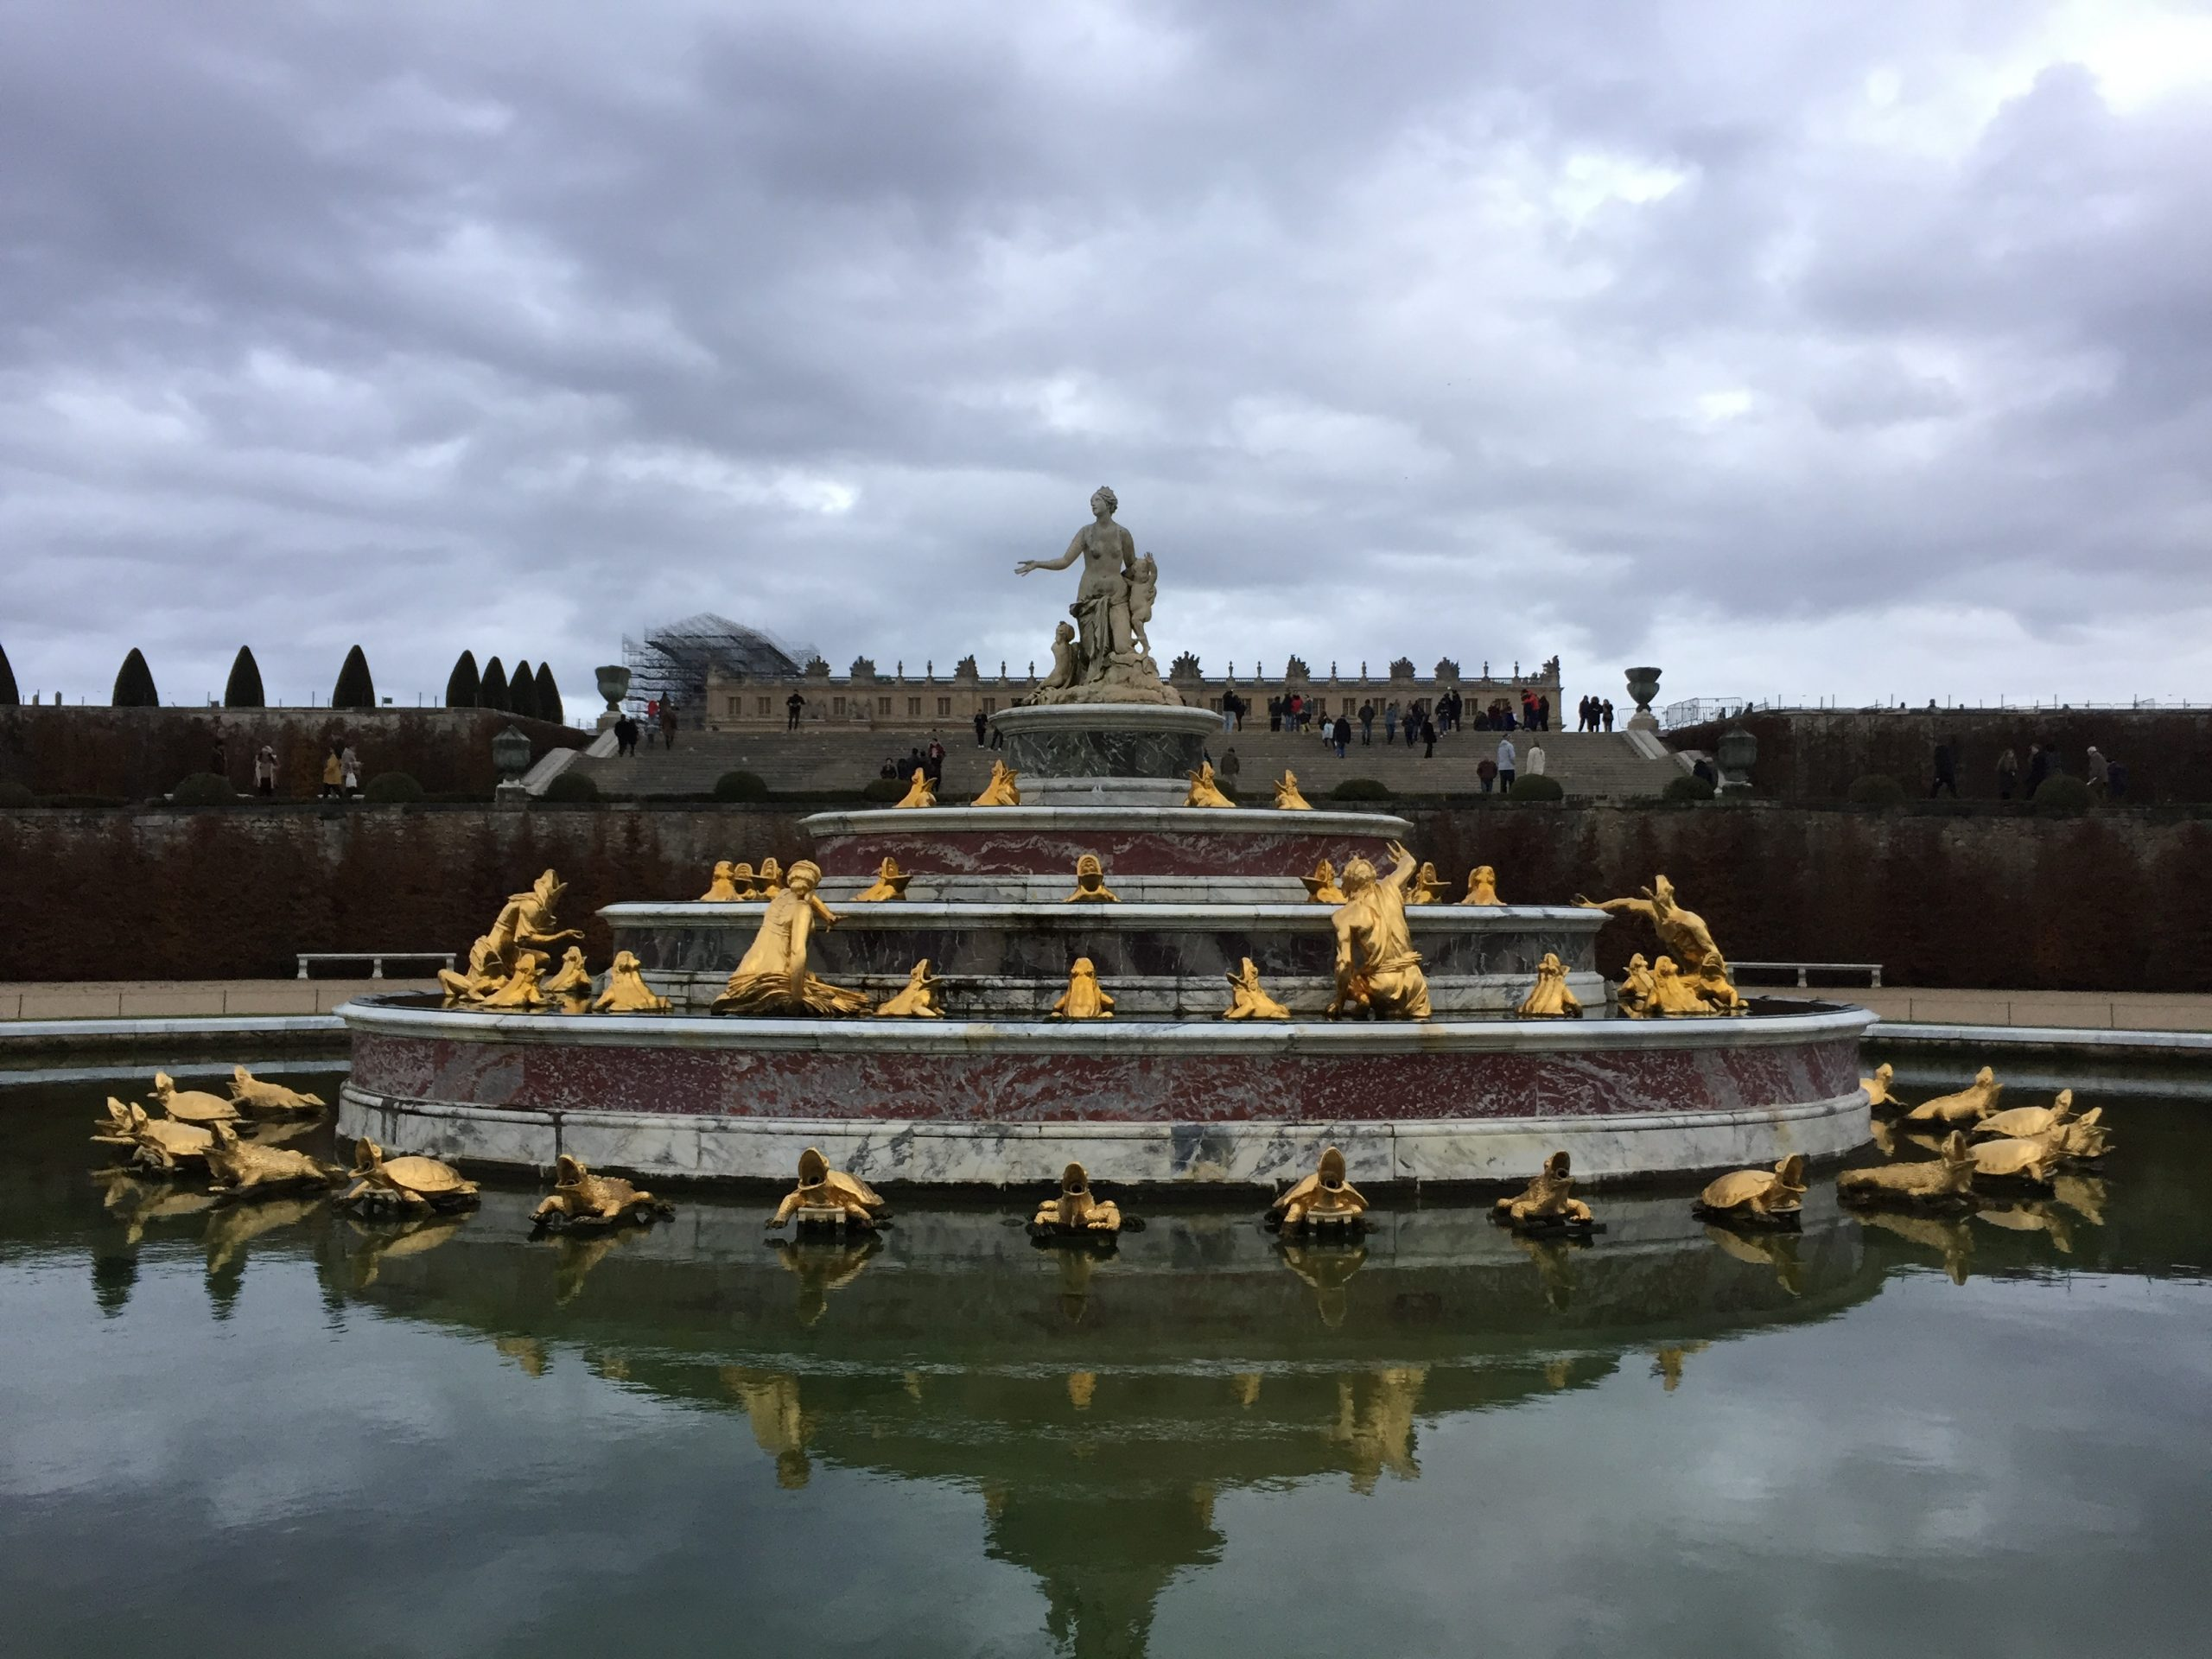 Fountain at the Palace of Versailles